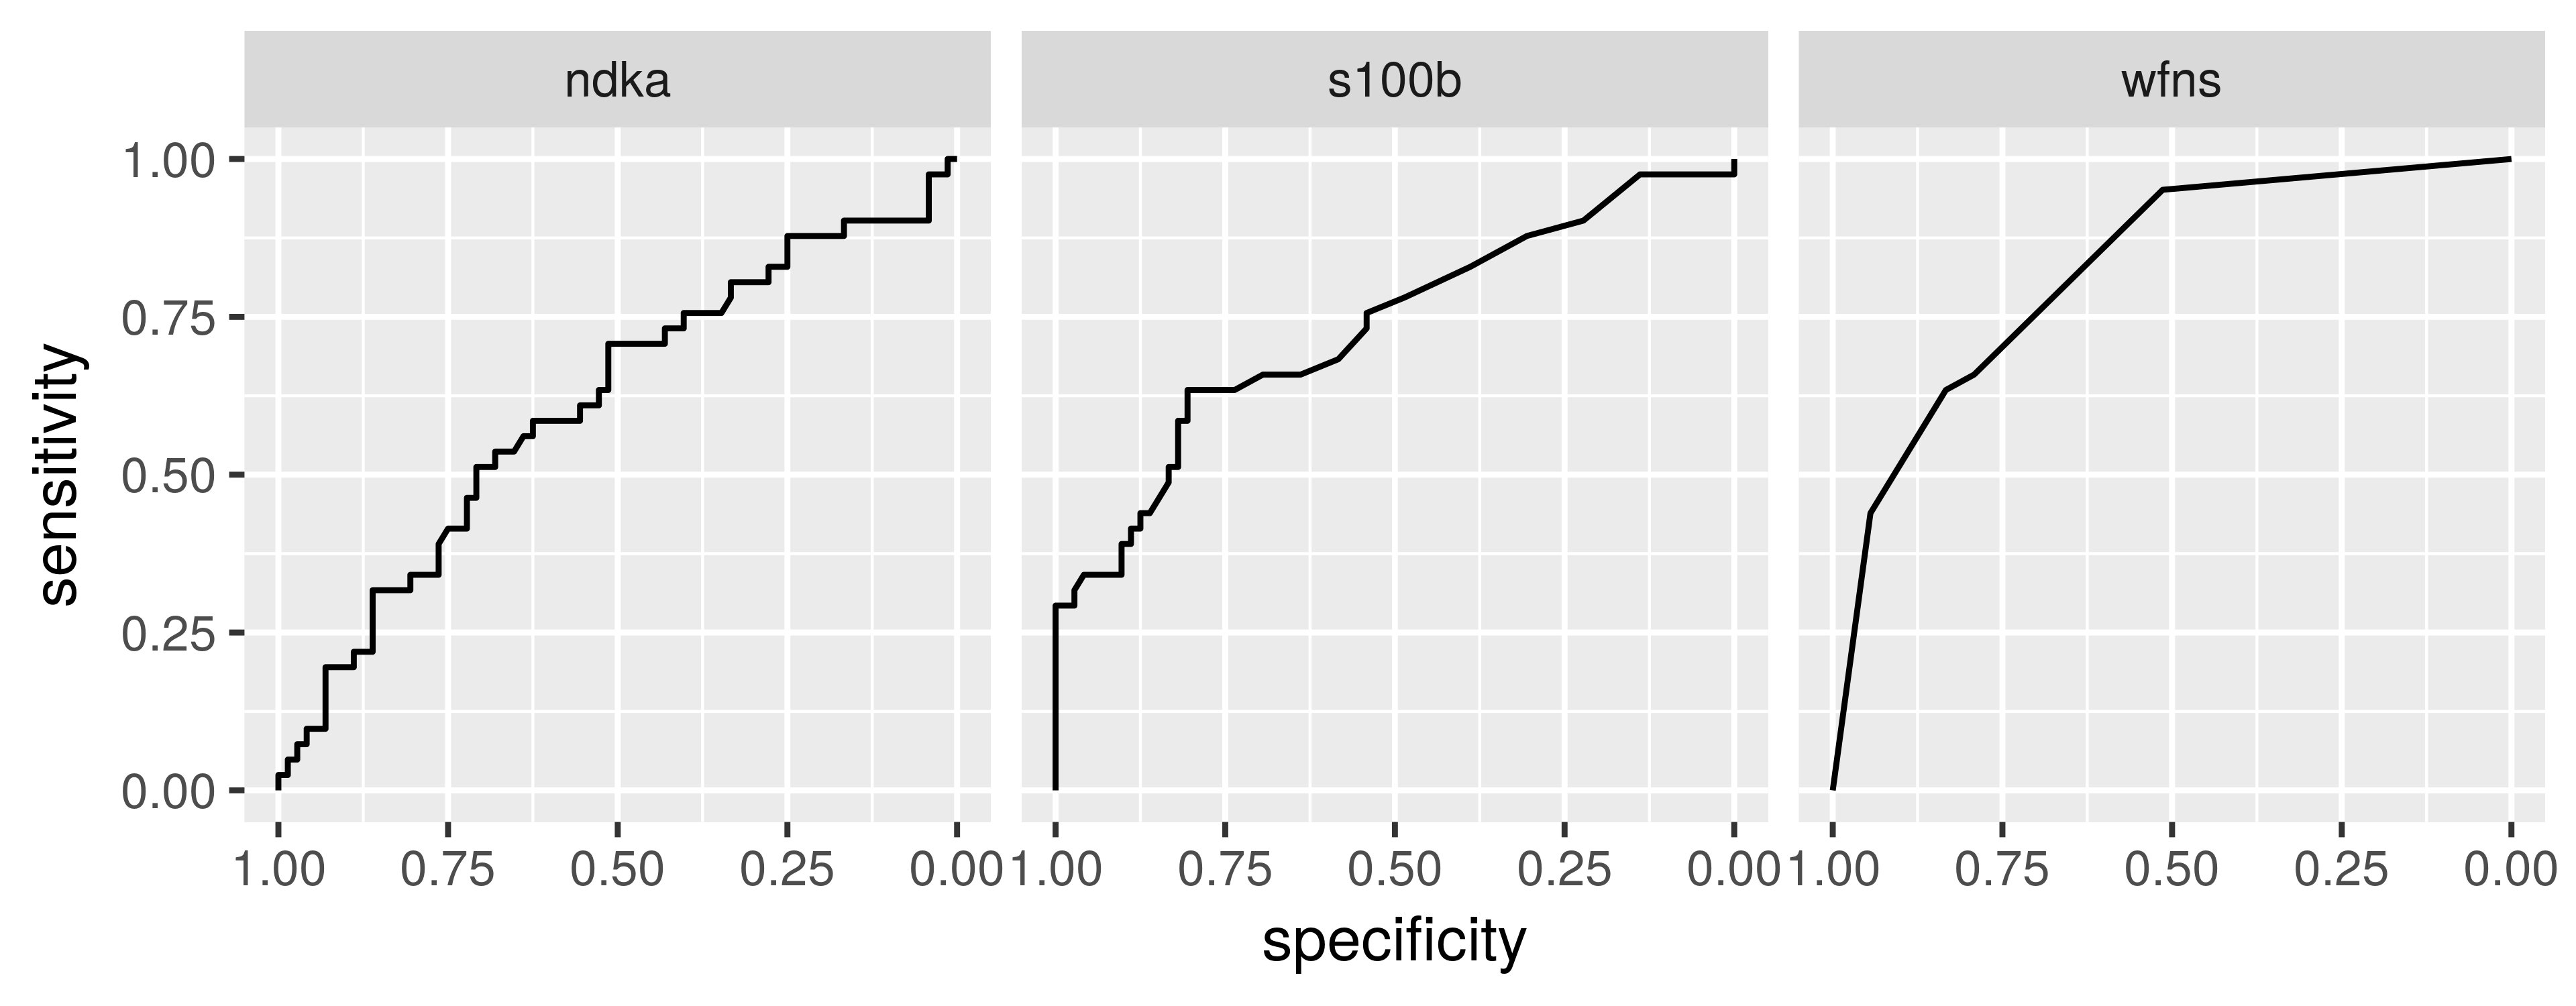 3 ROC curves in a facetted ggplot2 panel